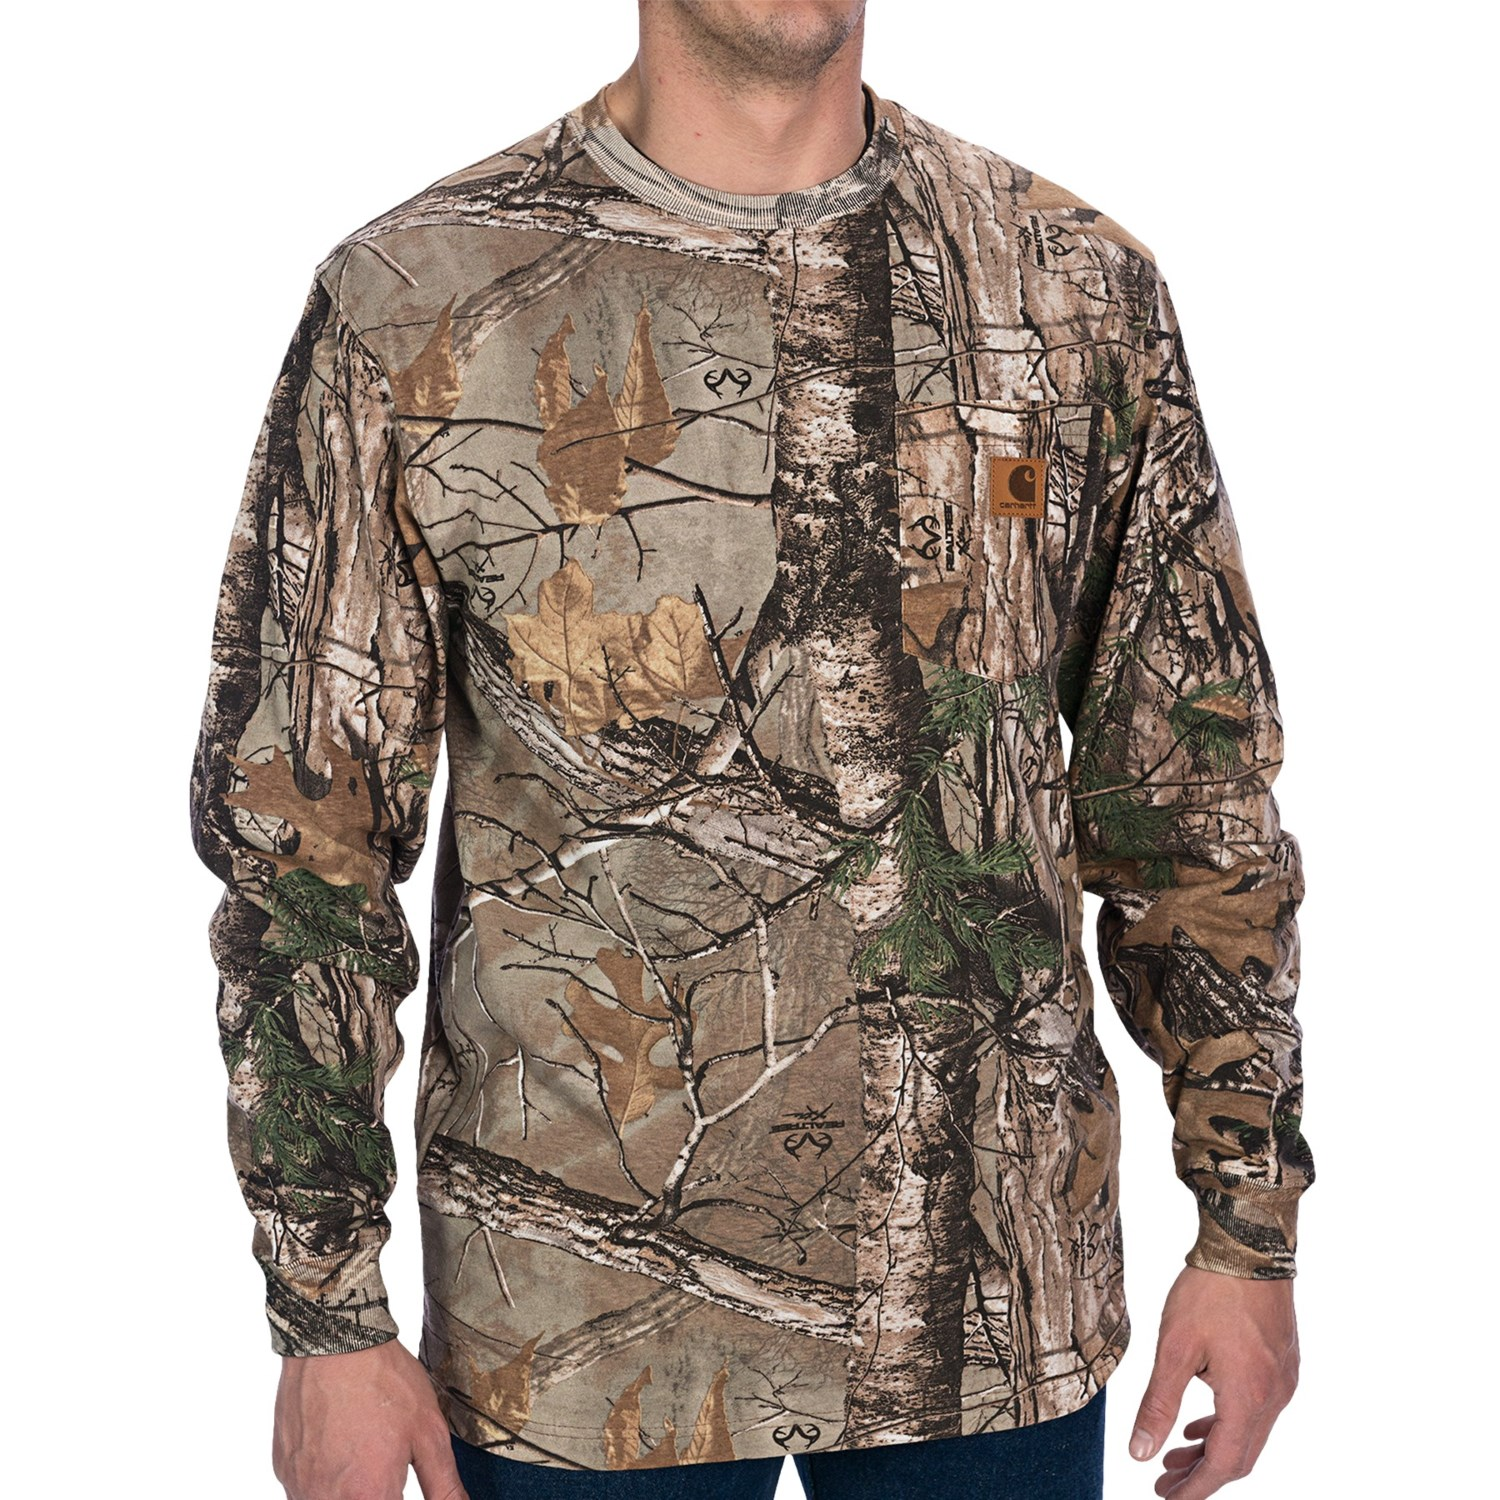 Shop men's hunting shirts for camouflage shirts, long sleeve camo shirts and camo compression mocks from Under Armour. FREE SHIPPING available in US.